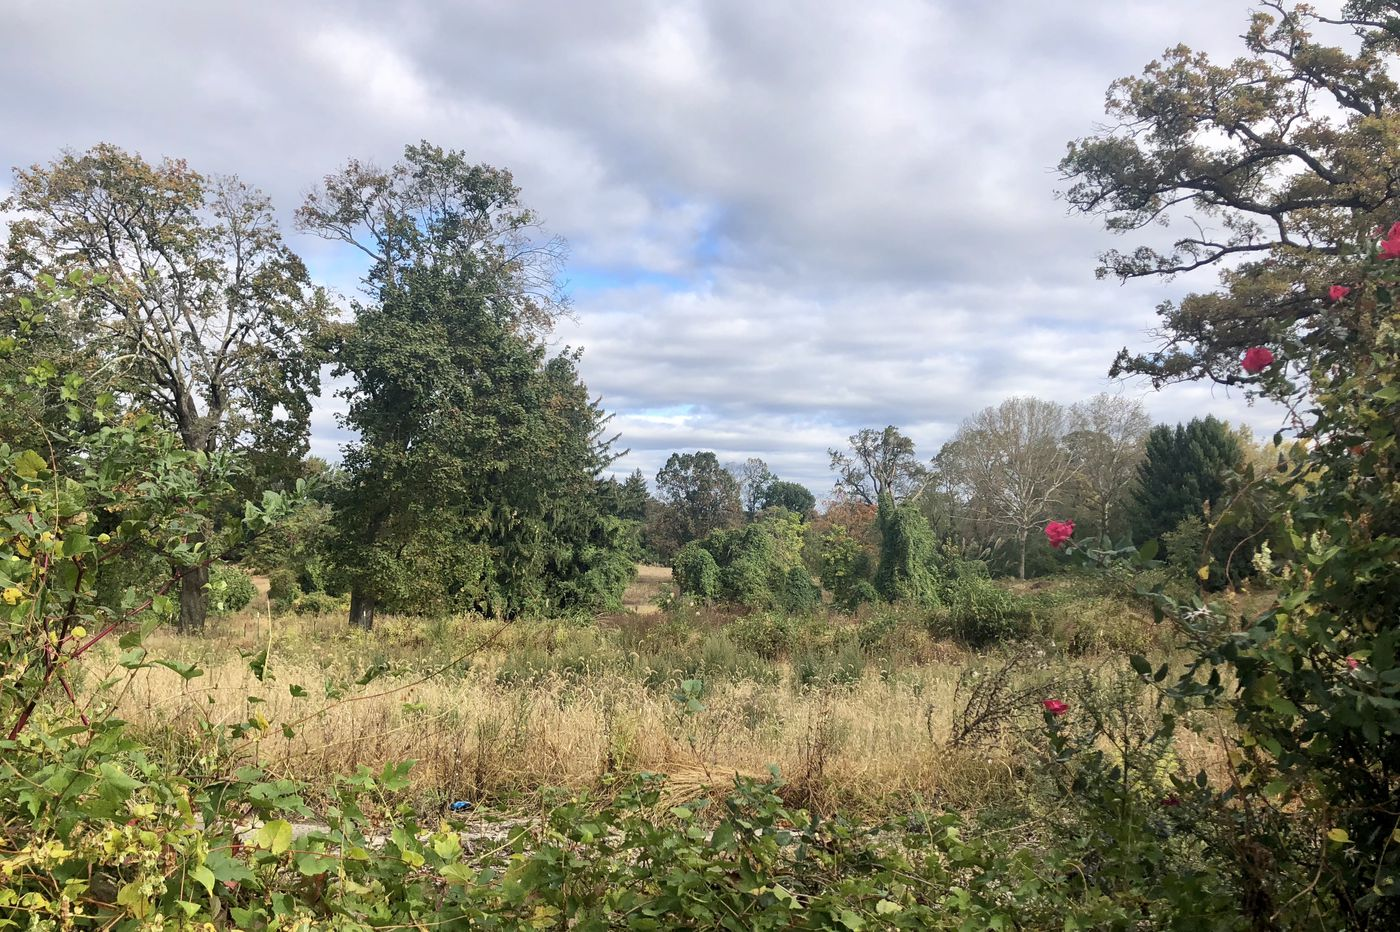 Developer sells former Cheltenham country club land to Bucks County builder for $9 million